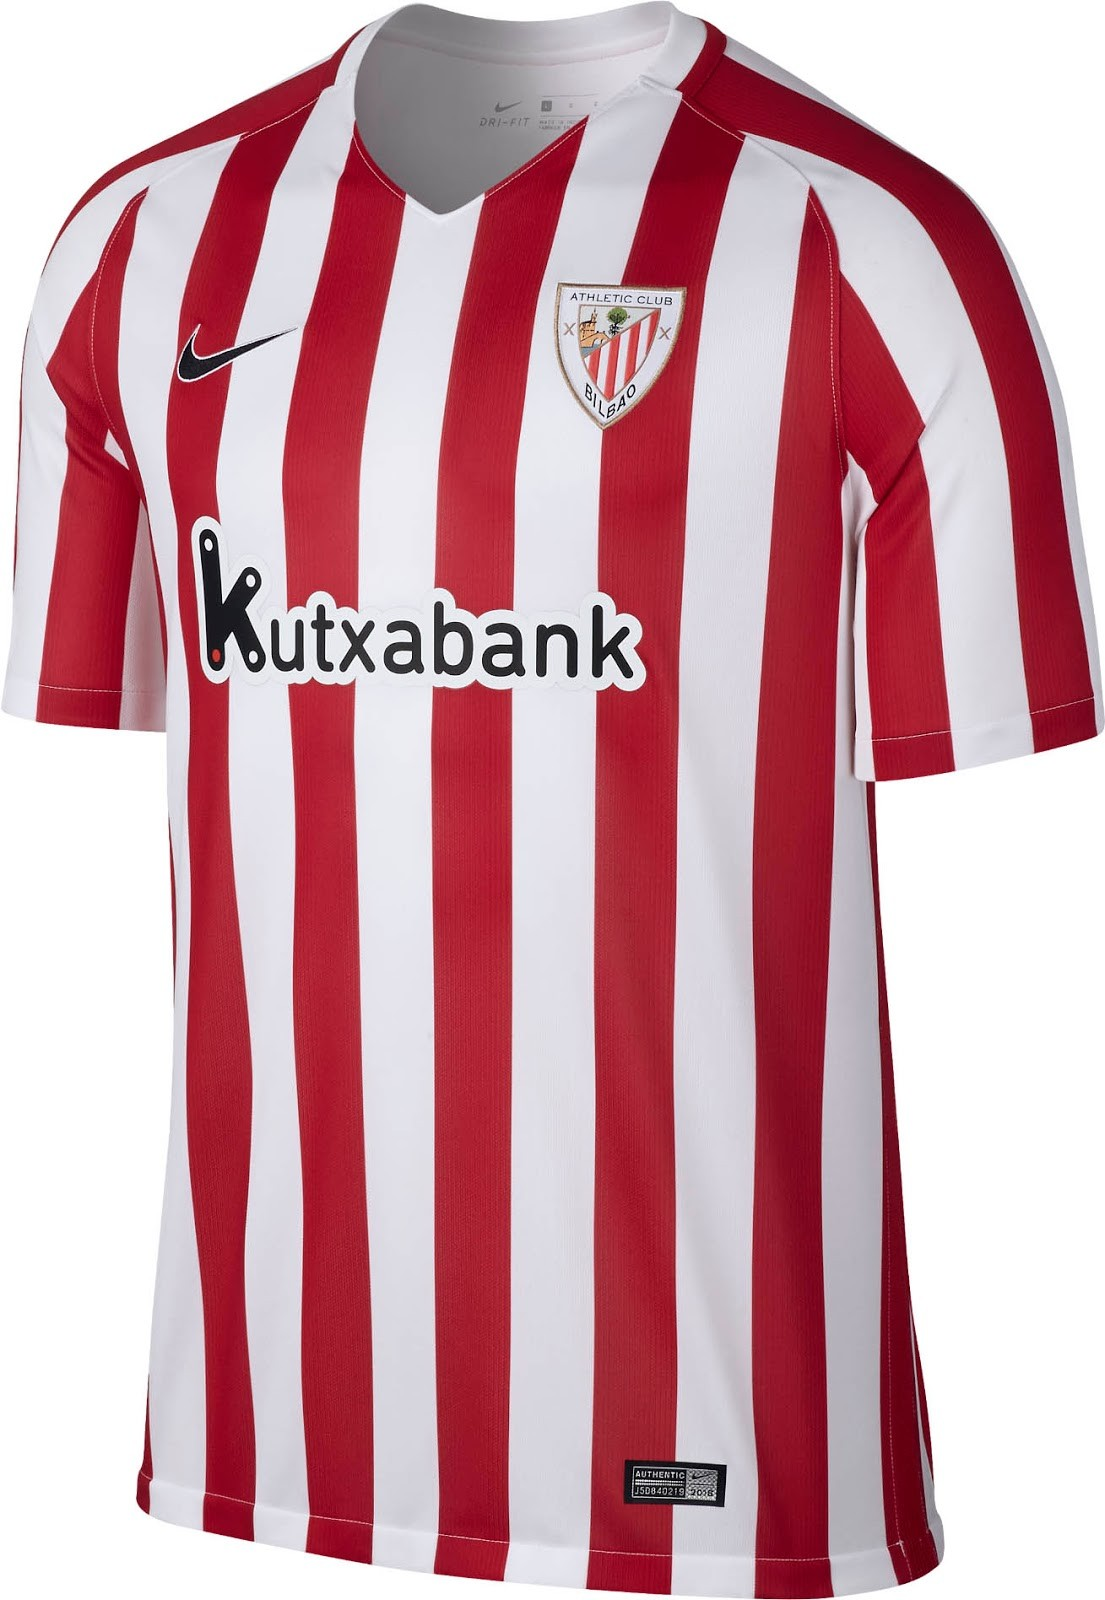 bilbao-16-17-home-kit (3footheadlinesdotcom)